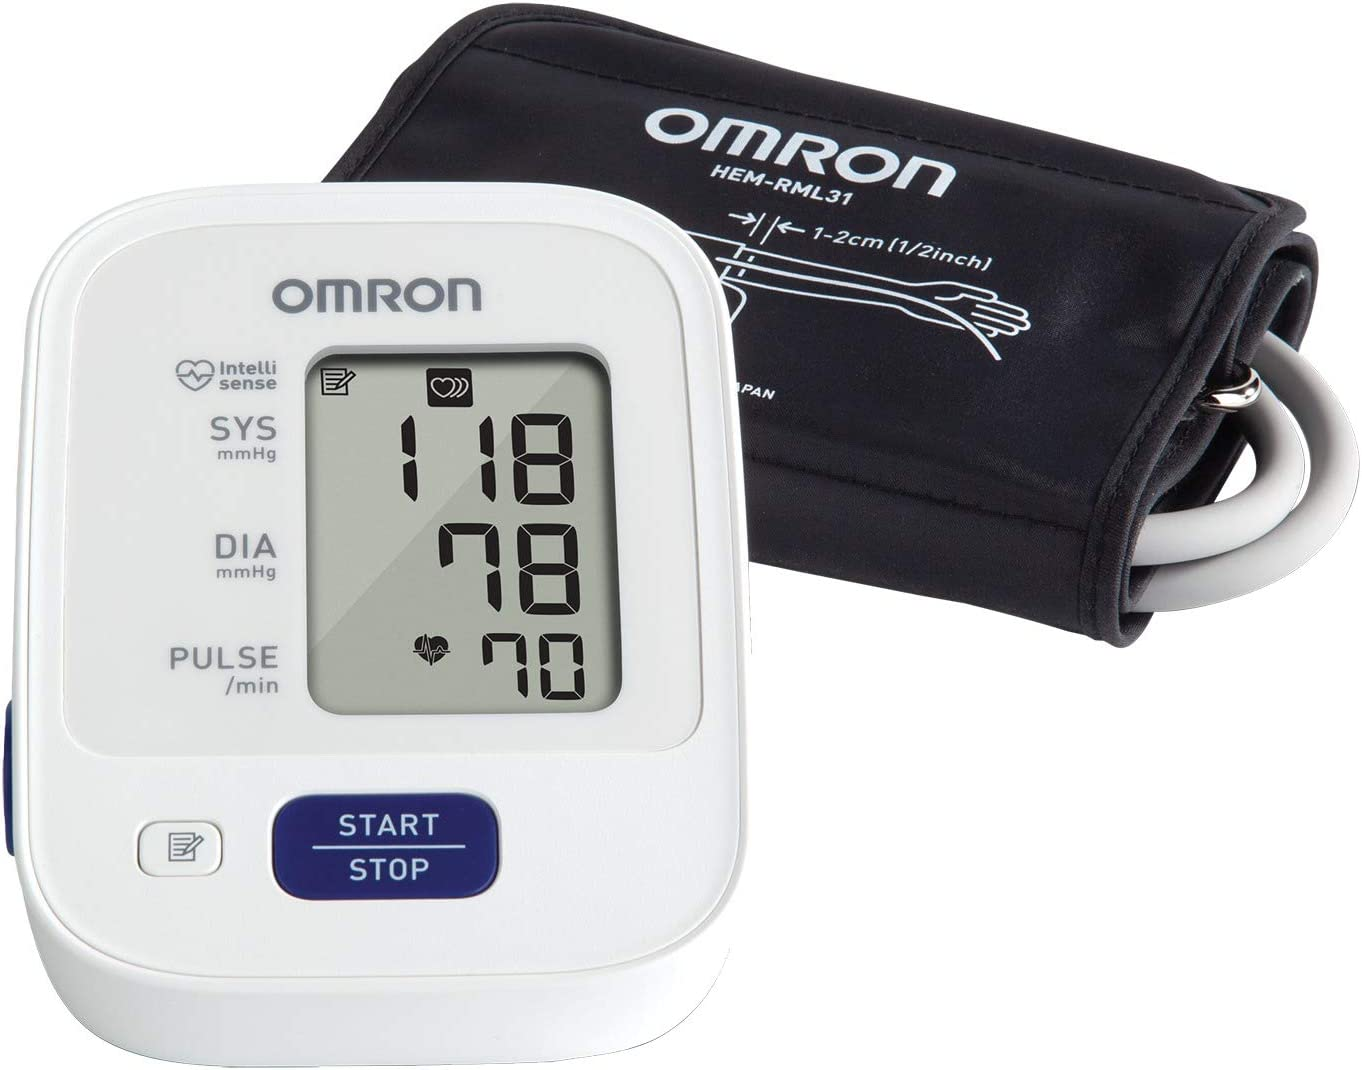 Omron 3 Series Upper Arm Blood Pressure Monitor; 14-Reading Memory, Soft Wide-Range Cuff